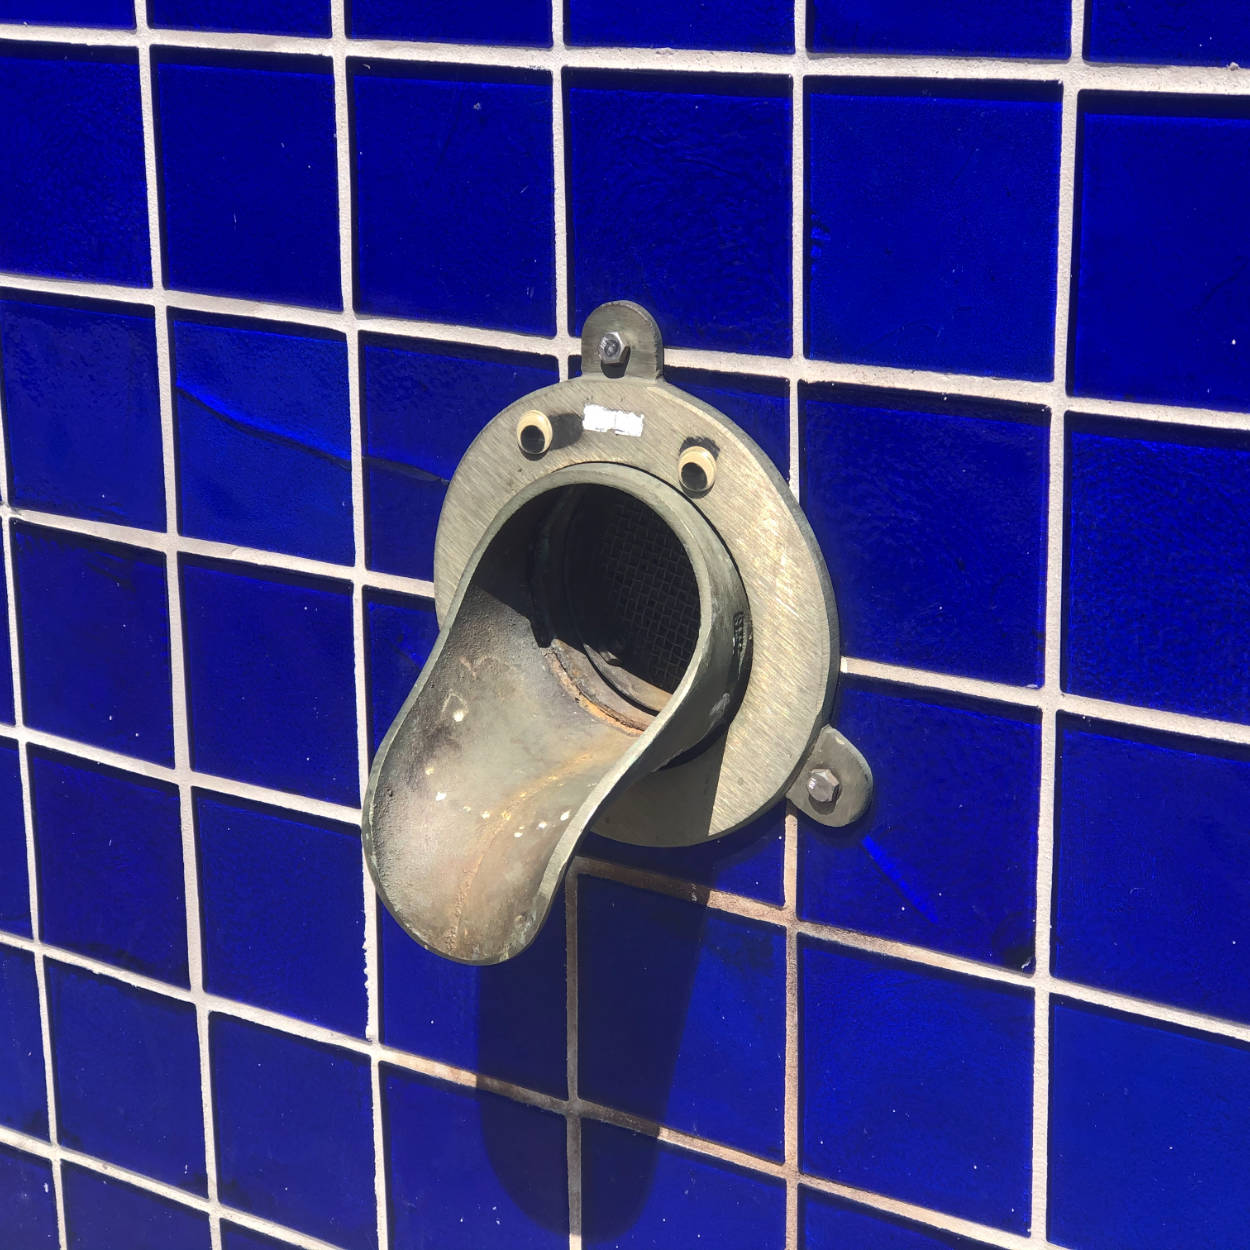 A condensation pipe outlet on a blue tile wall with googly eyes on it to make it look like a face